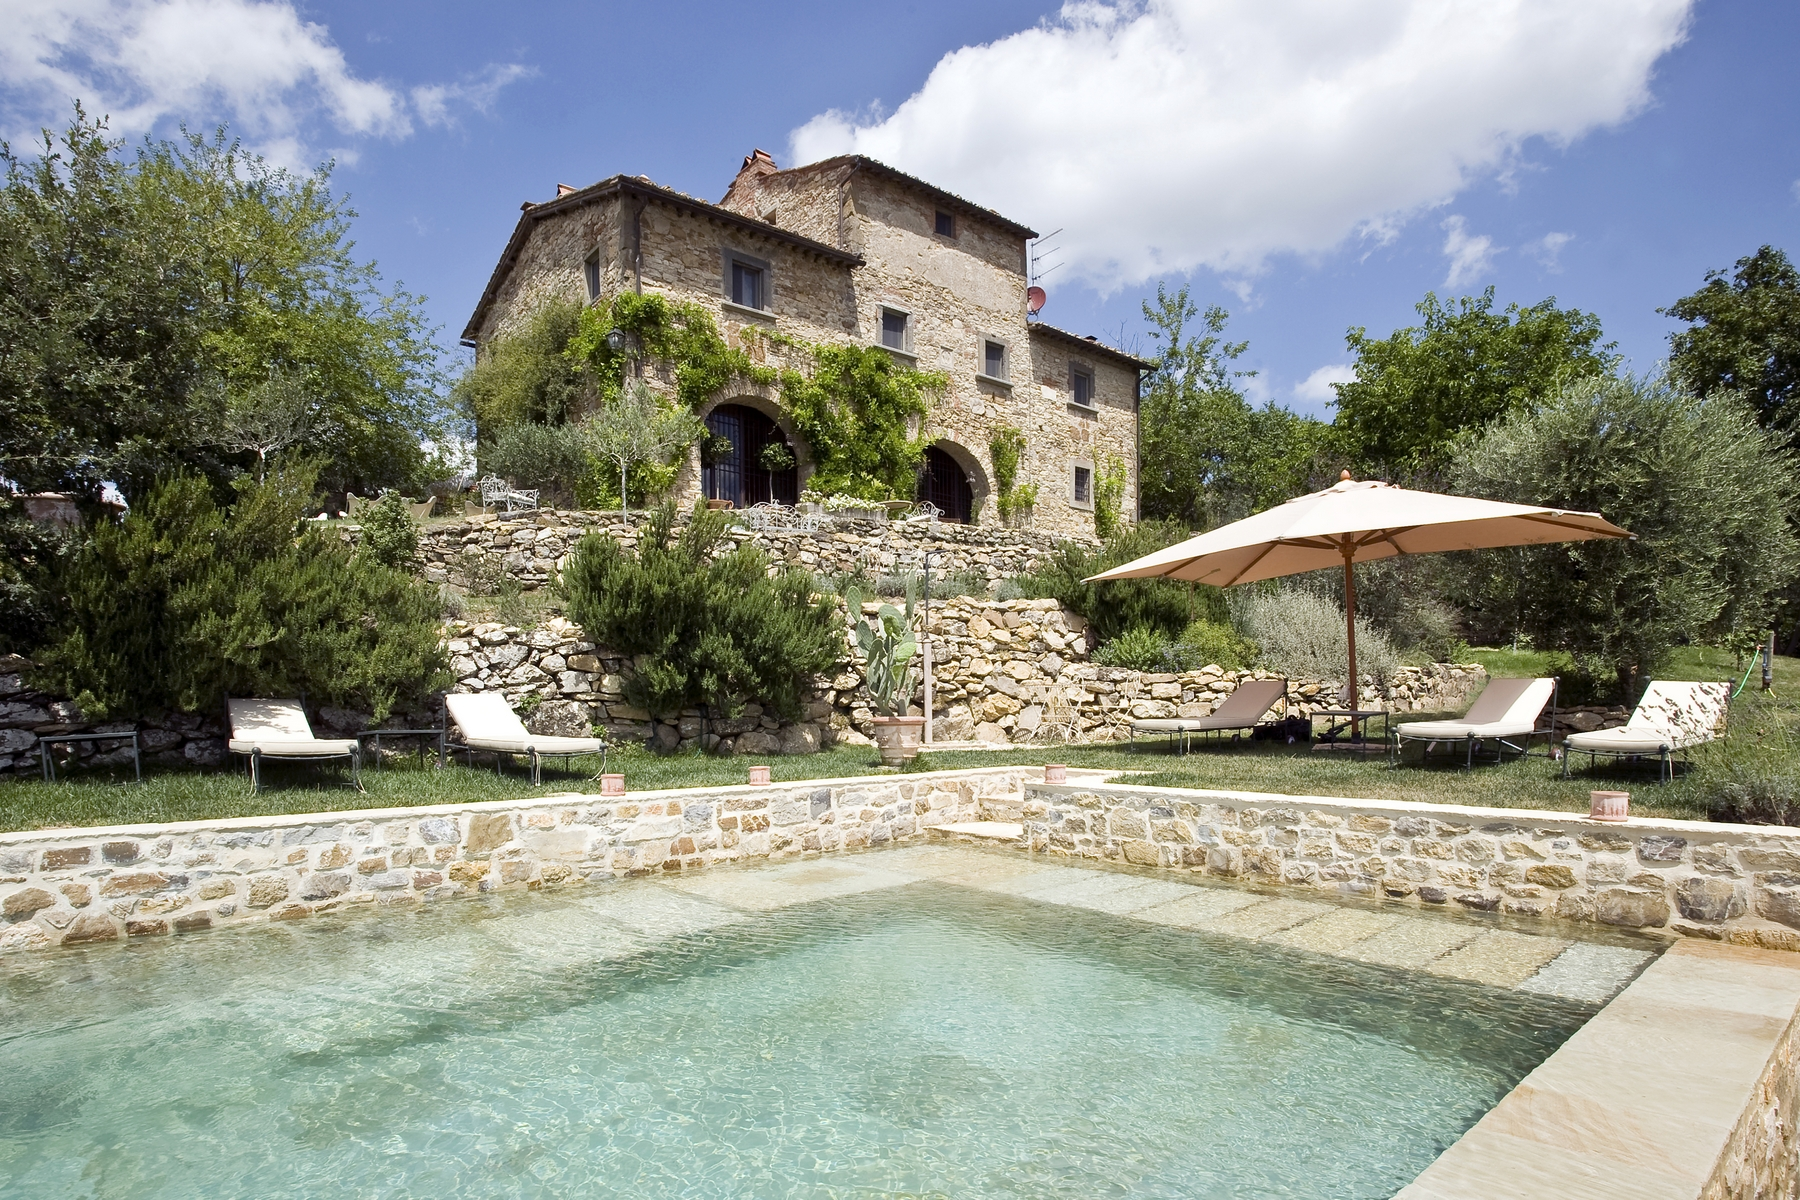 A charming chianti farmhouse with breathtaking views and pool